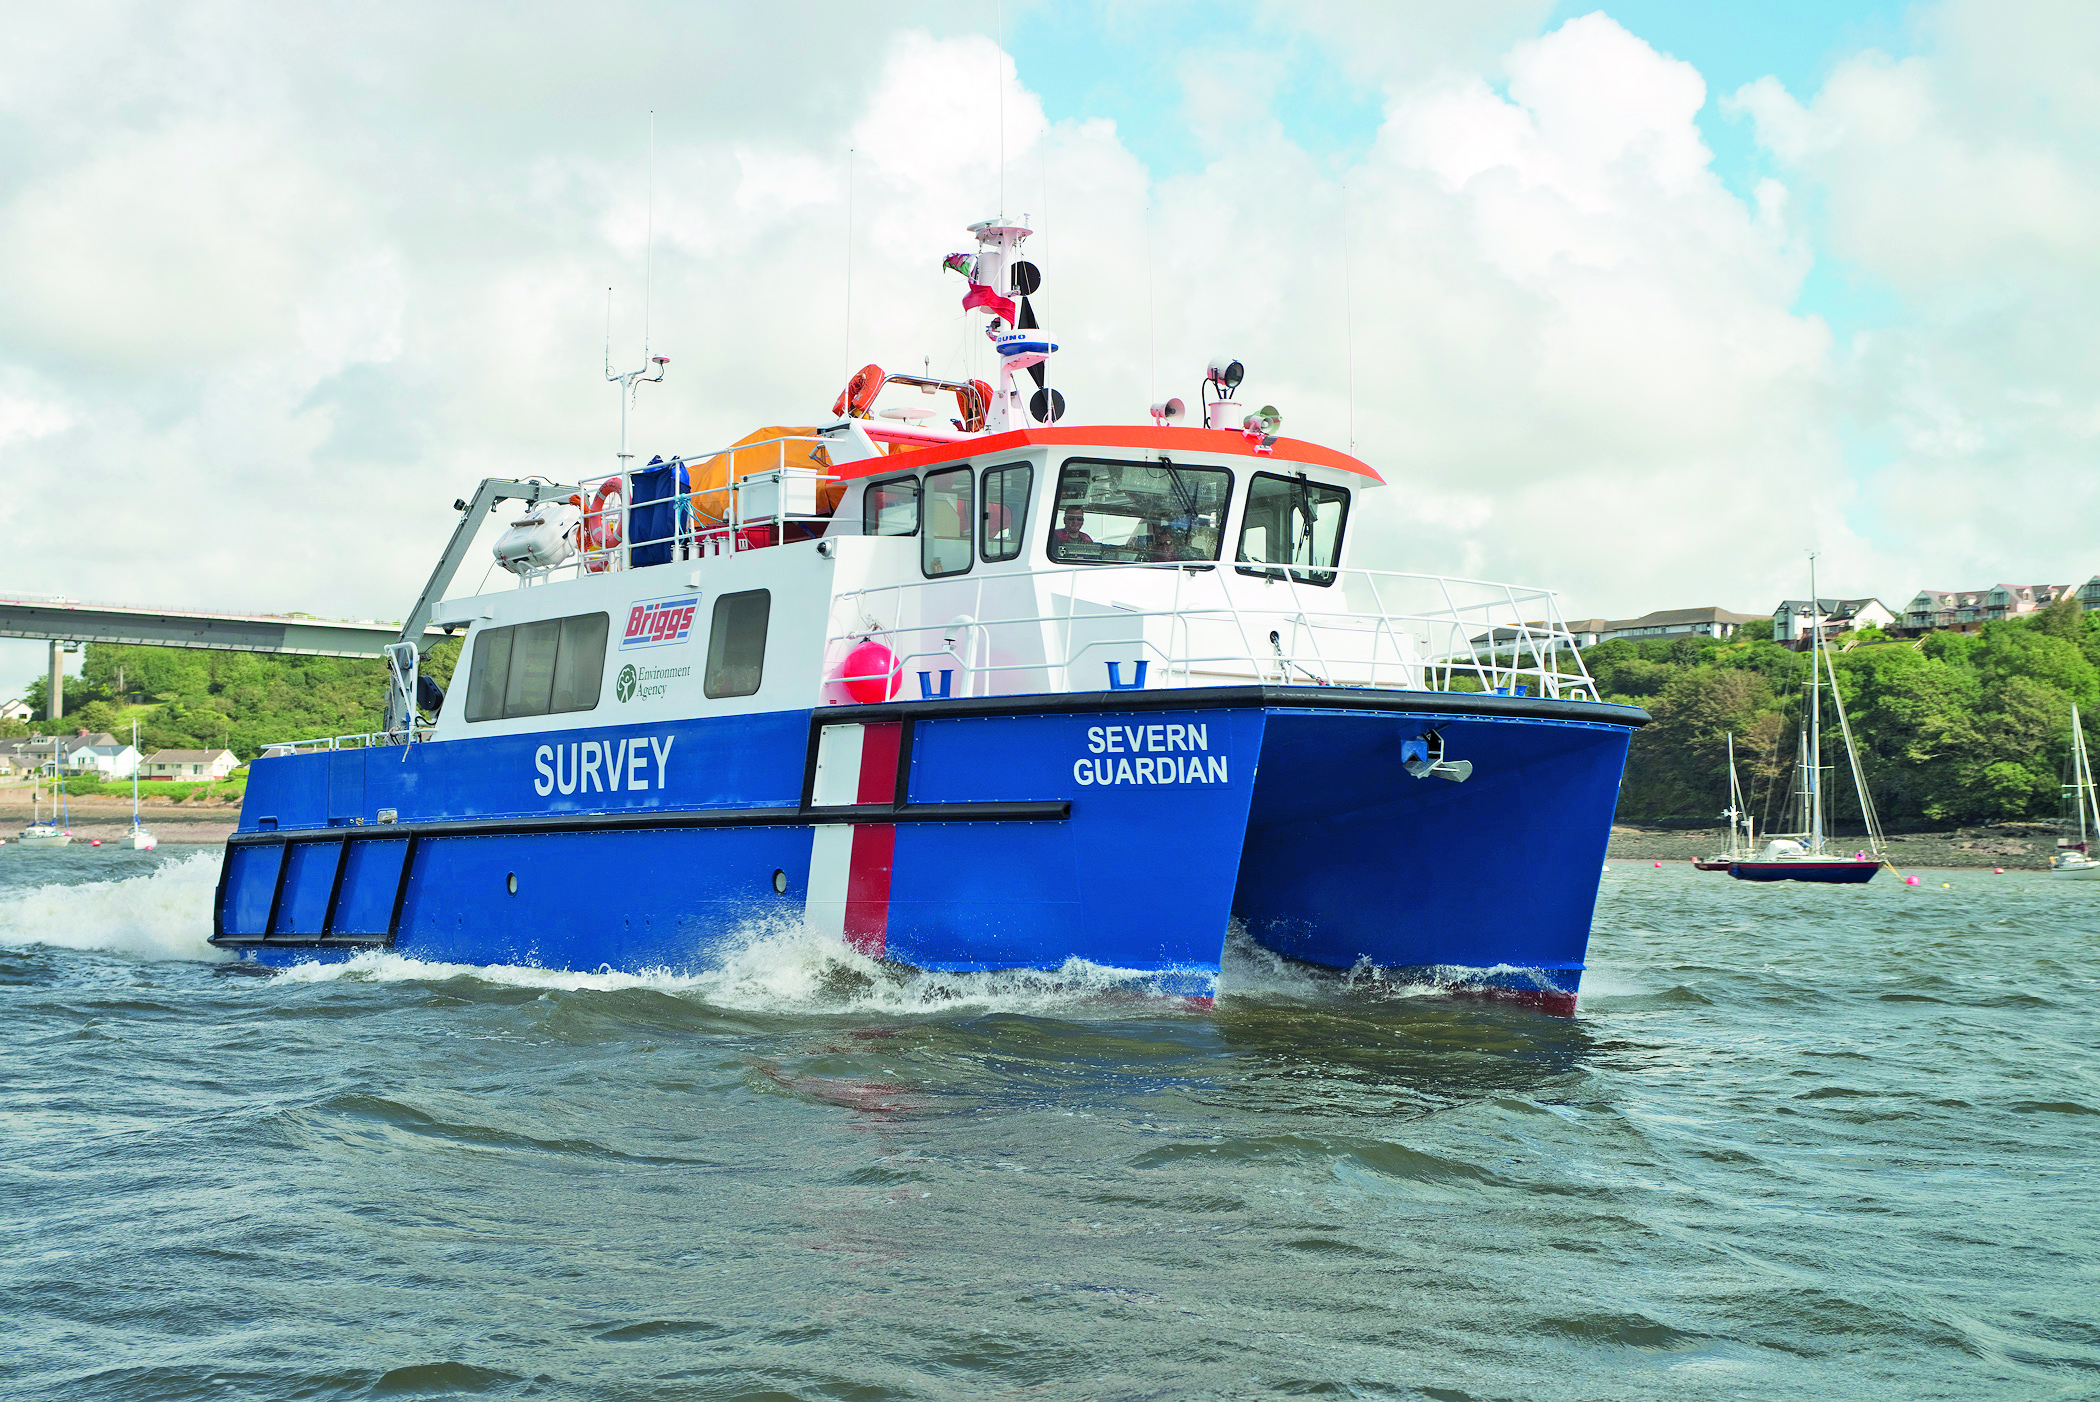 Image of Severn Guardian